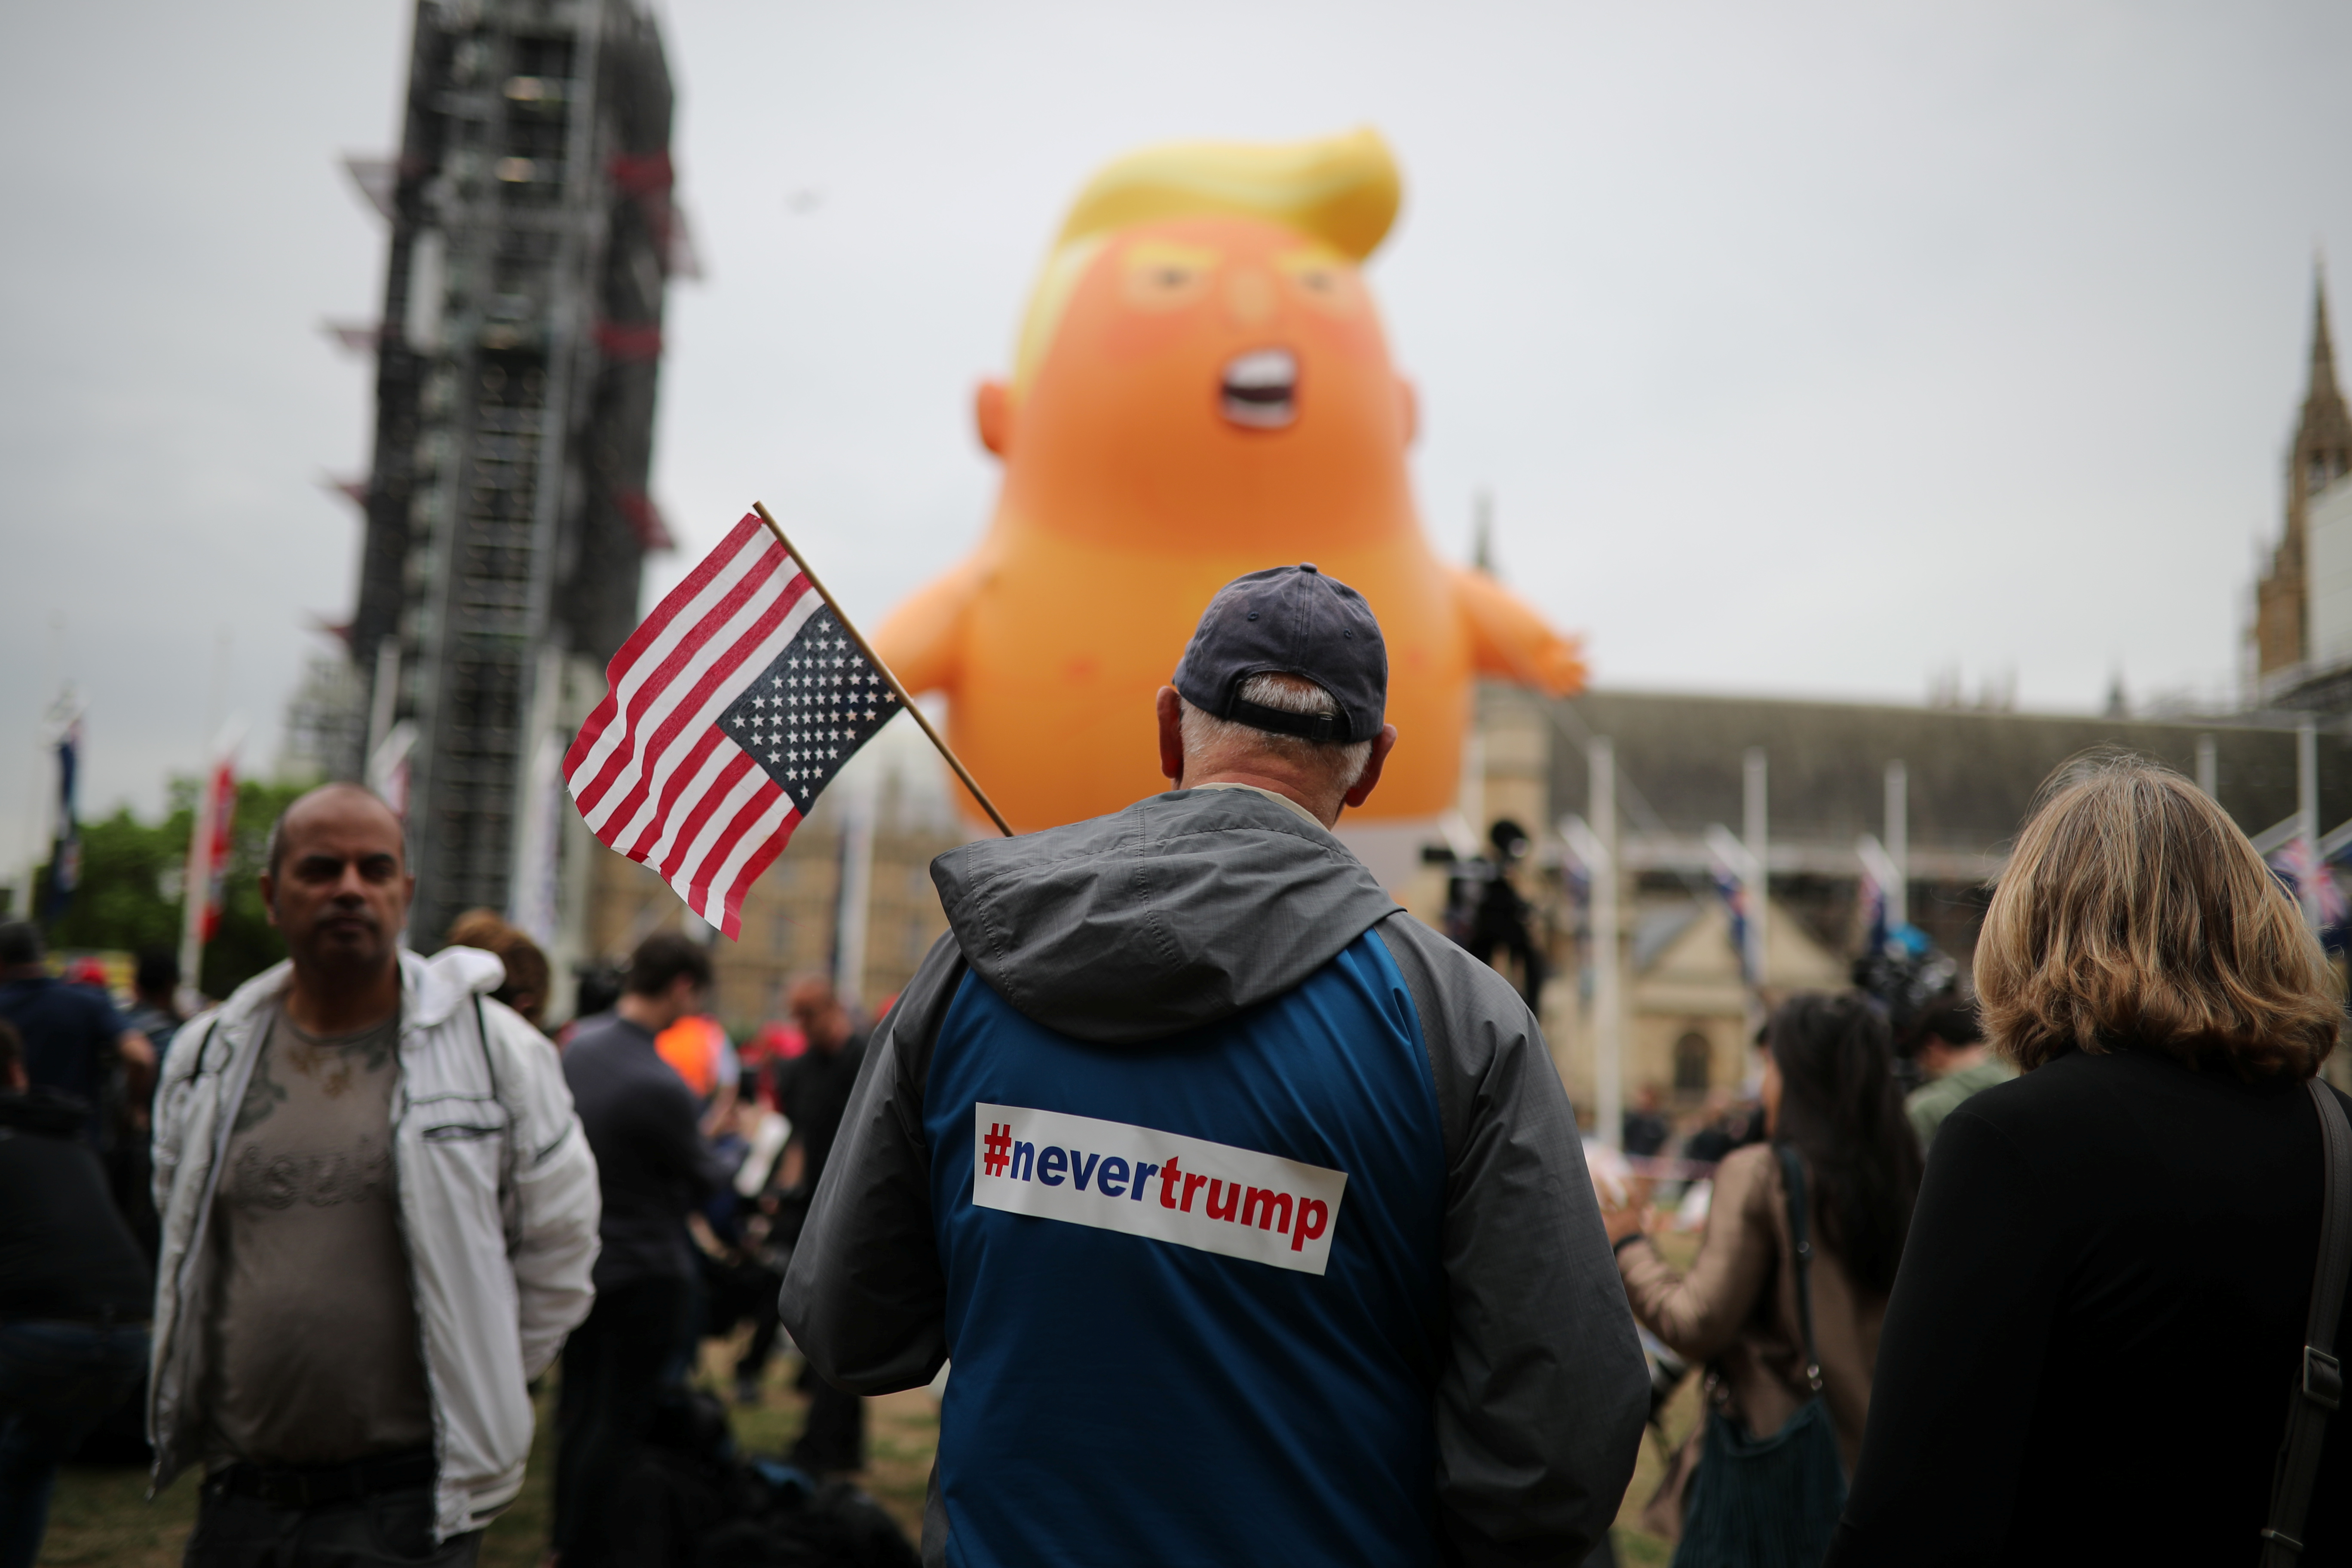 "A ""Baby Trump"" balloon is seen over demonstrators as they participate in an anti-Trump protest in London, Britain, June 4, 2019. REUTERS/Alkis Konstantinidis"